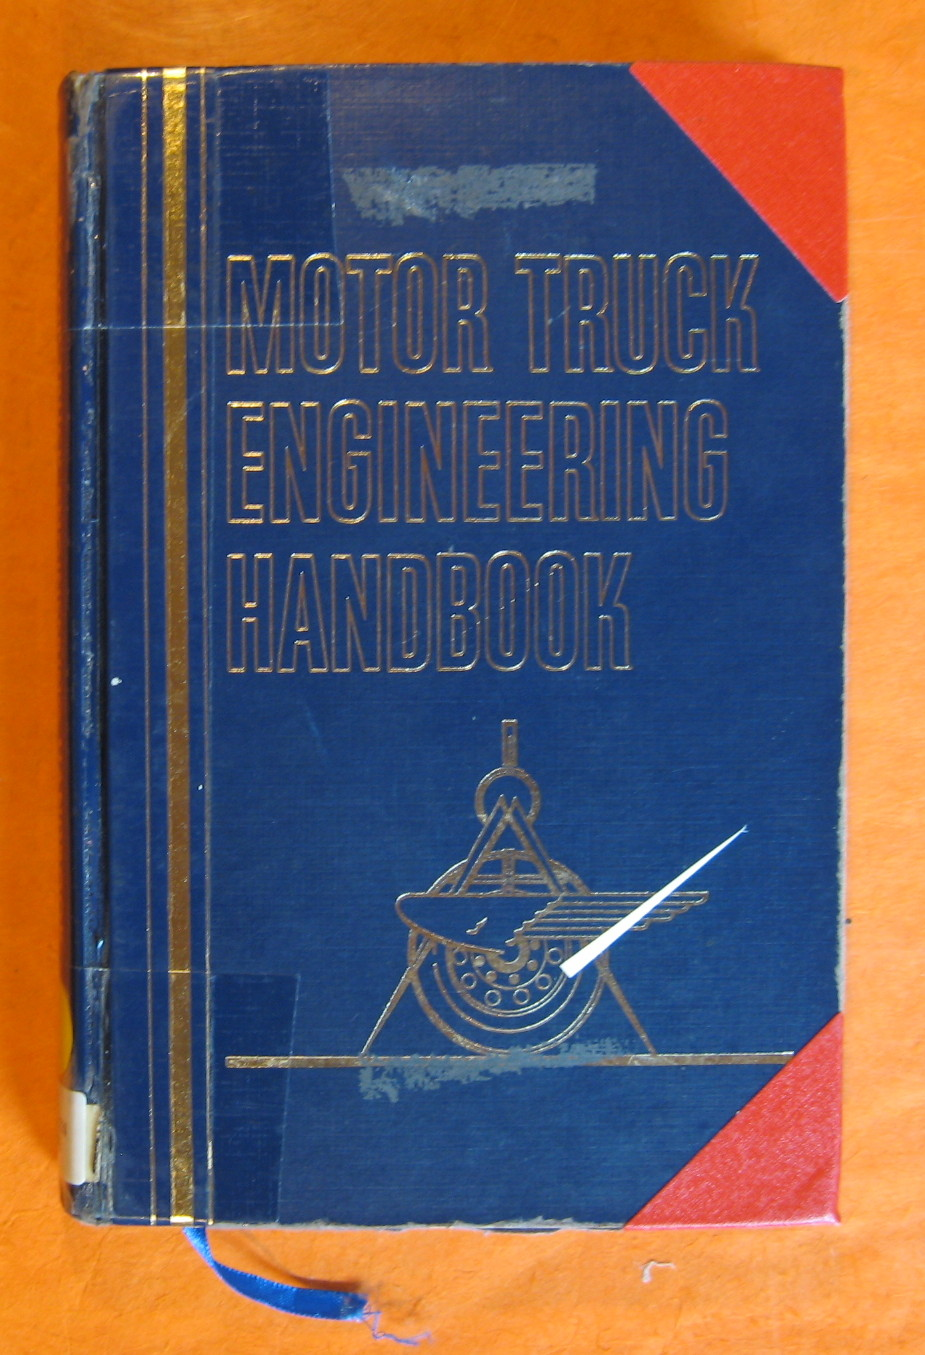 Blank Journal (Motor Truck Engineering Handbook)